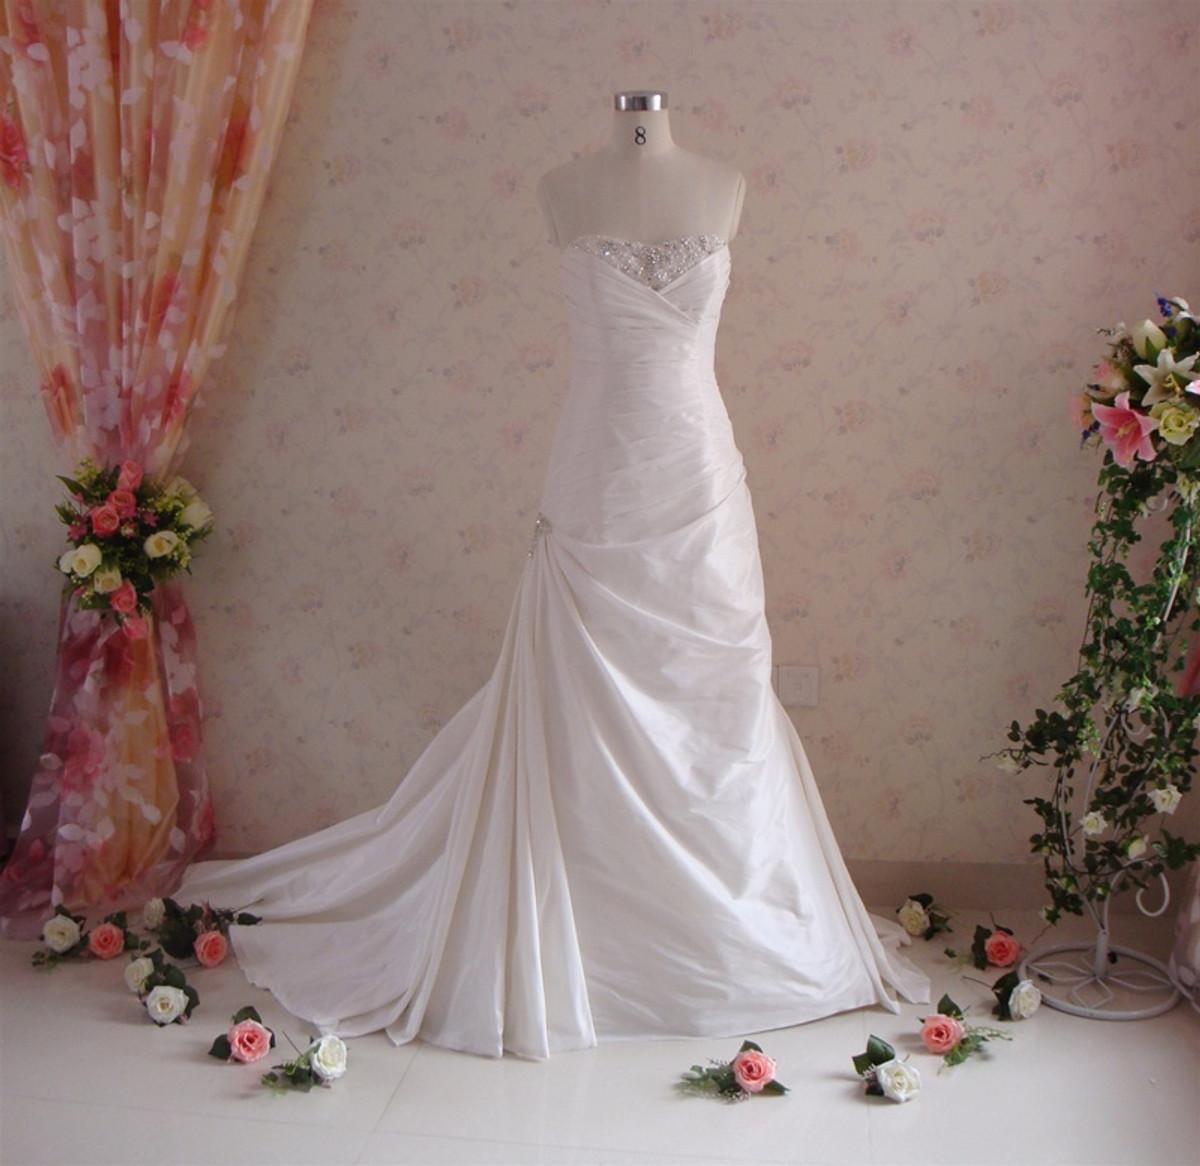 Trumpet Style Vintage Inspired Wedding Dress- Available in Every Color 5